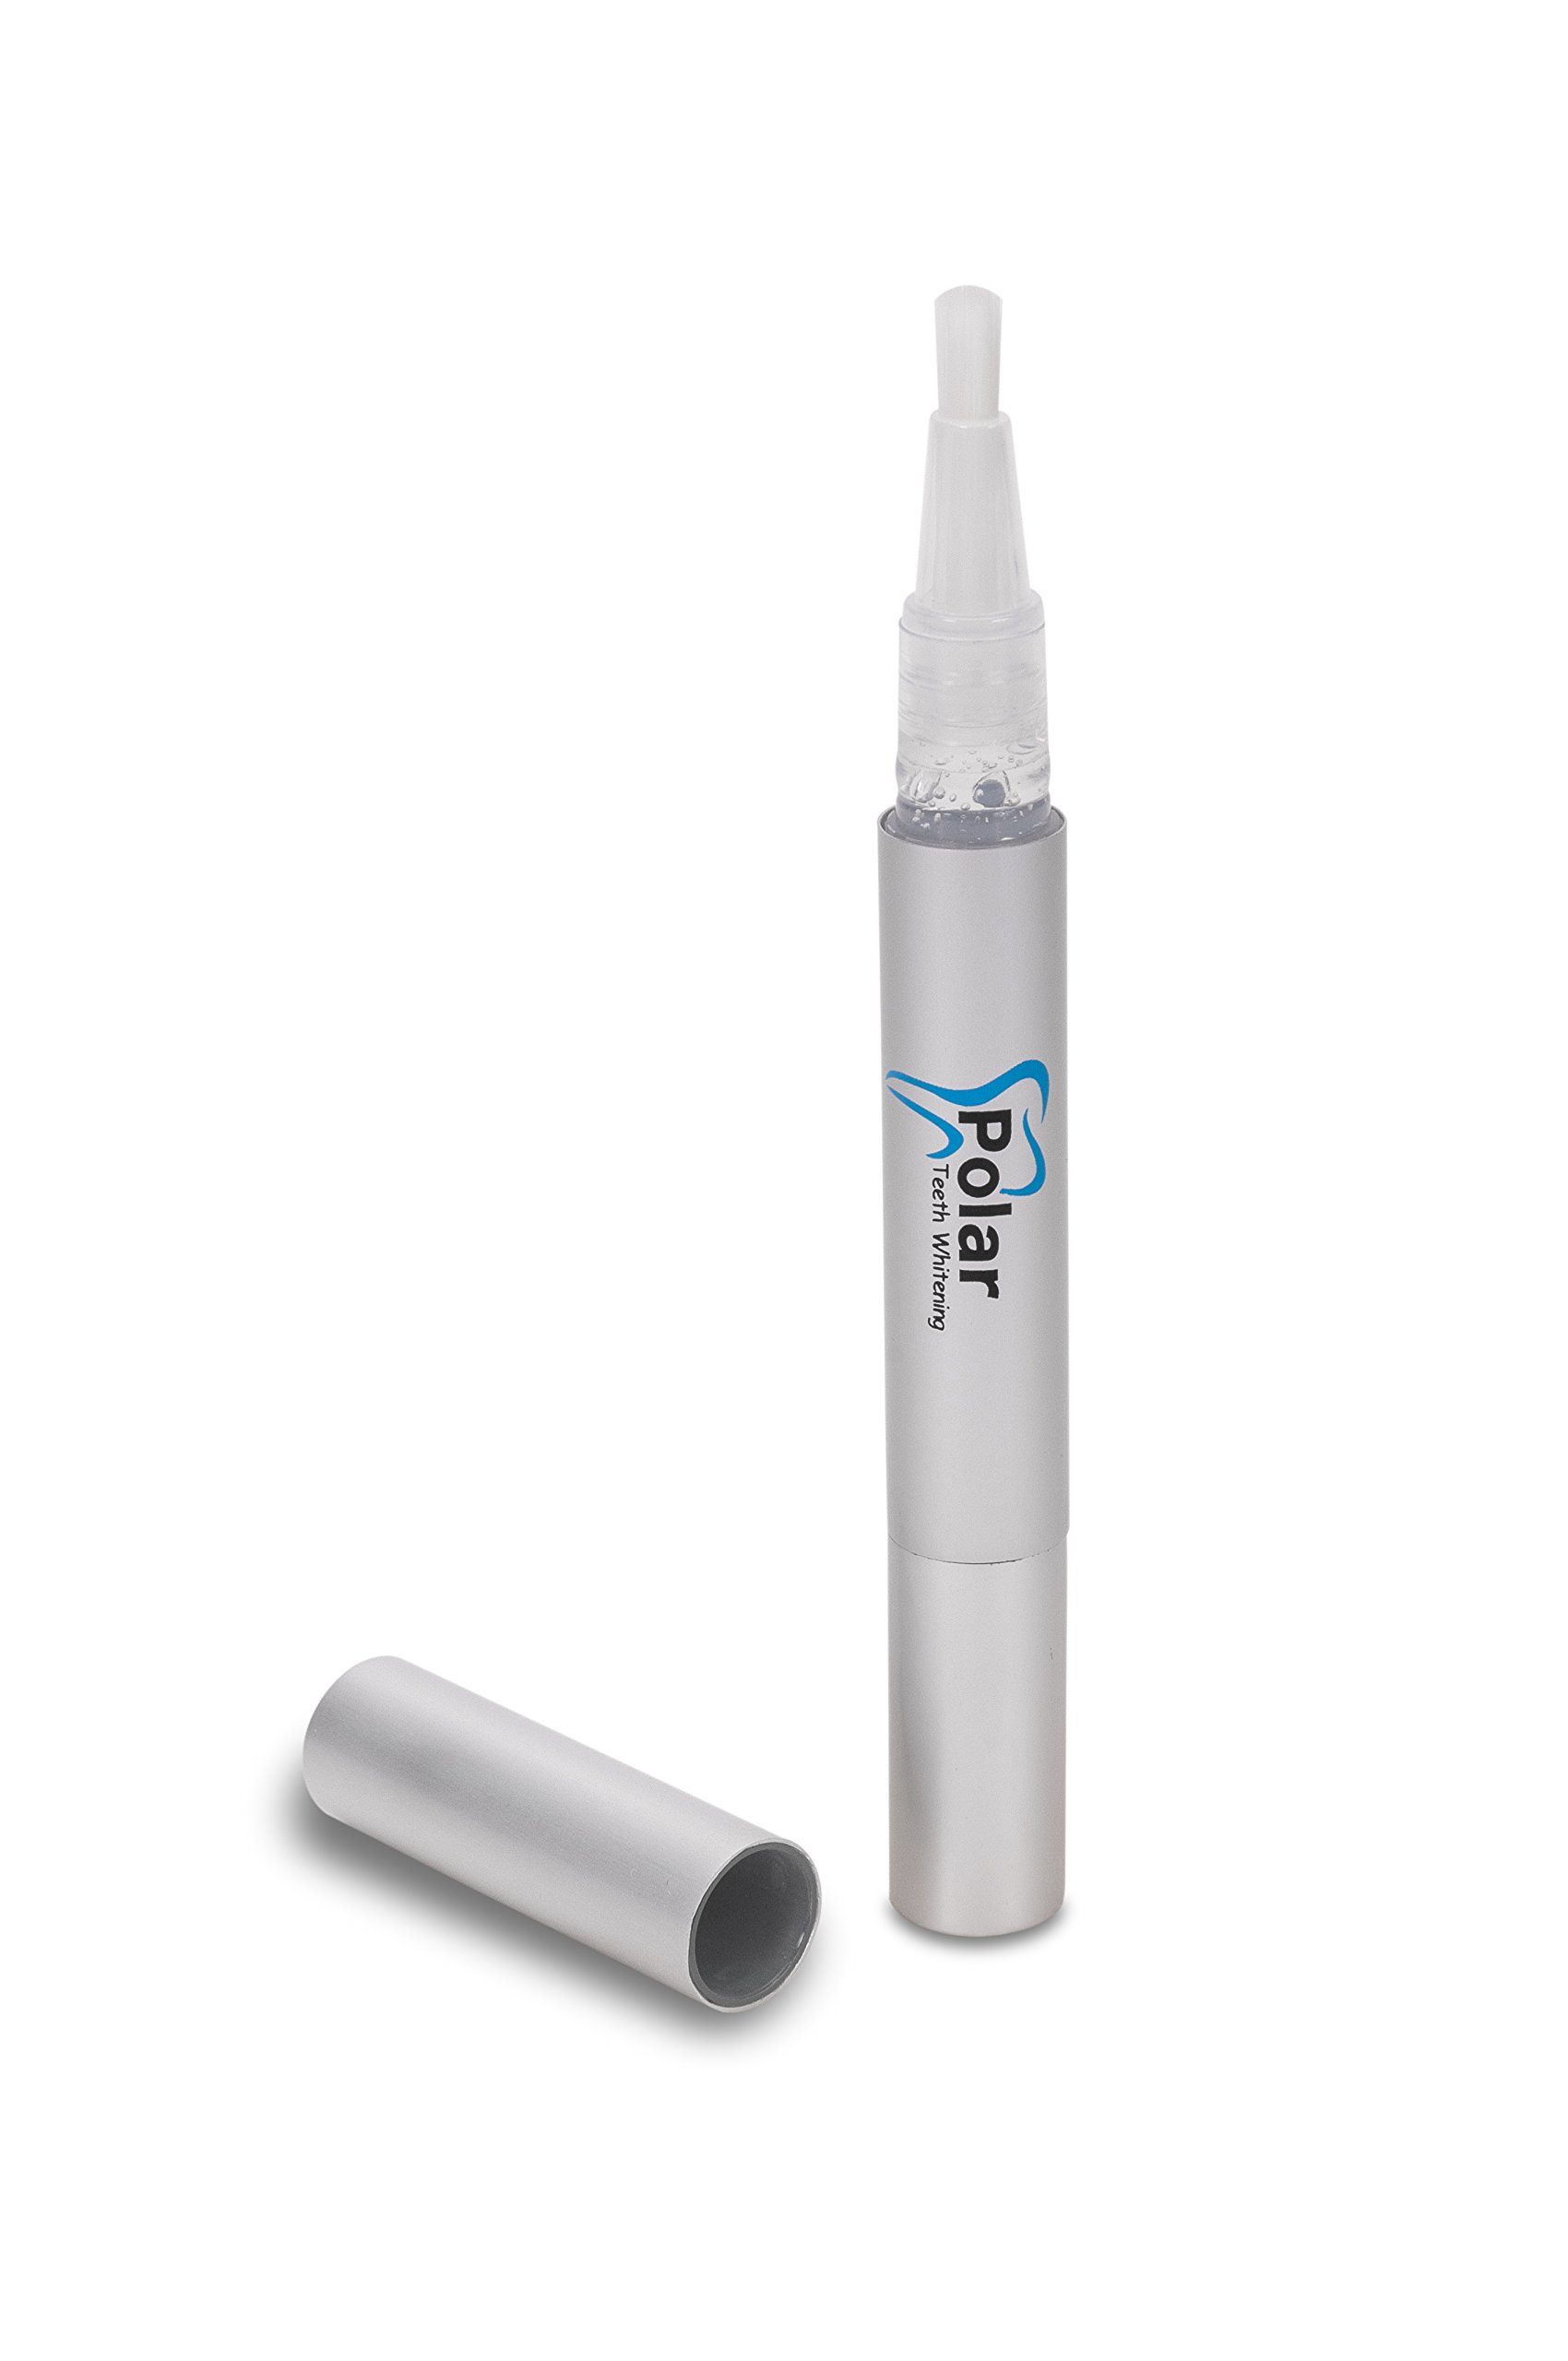 Polar Teeth Whitening Pen, More Than 20 Uses, Effective, Painless, No Sensitivity, Easy to Use, Beautiful White Smile, Natural Mint Flavor